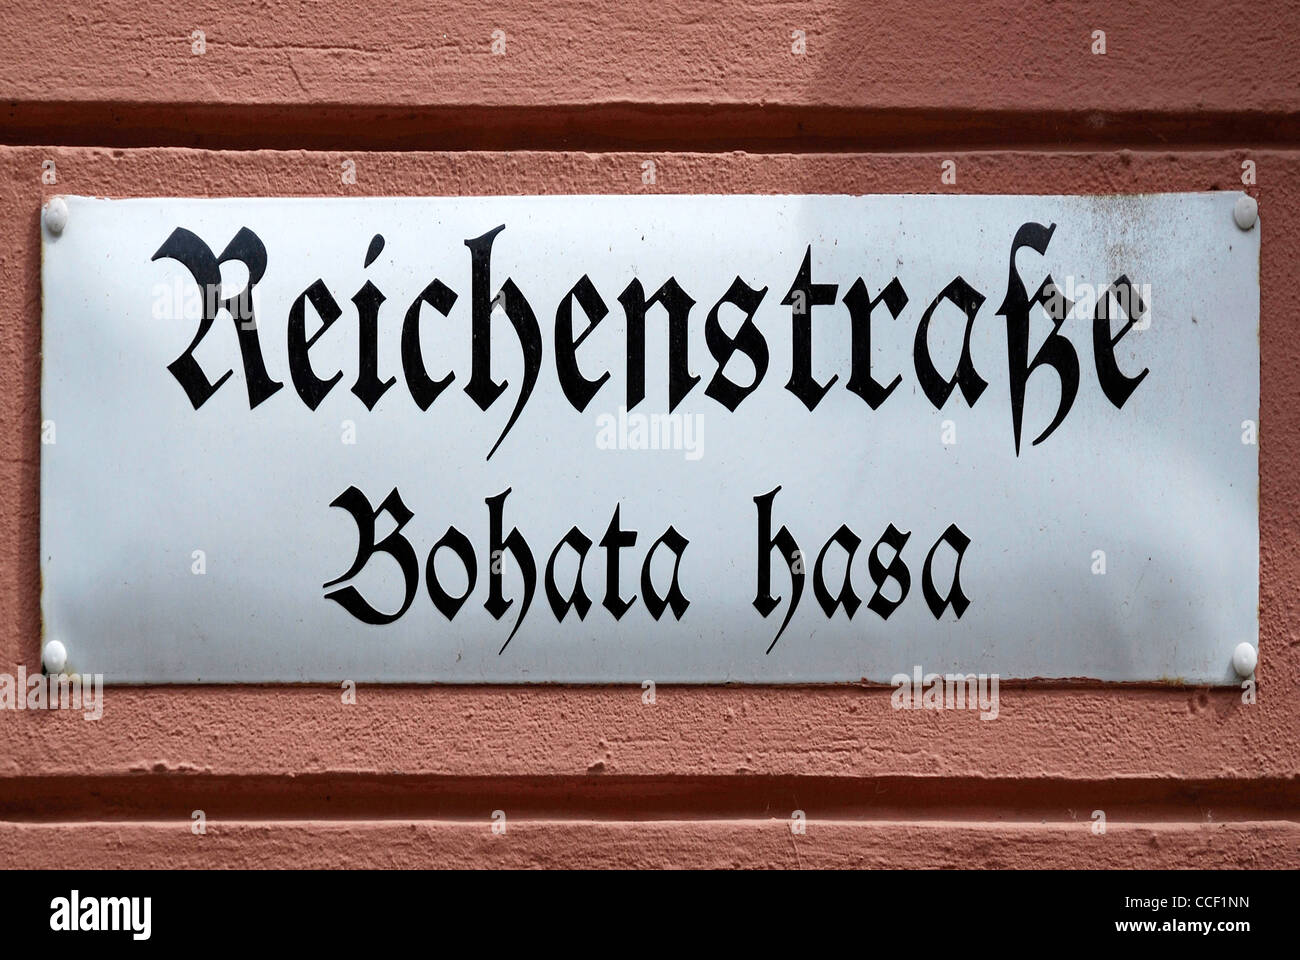 Street sign of Bautzen in German and Sorbian language at the Reichenstrasse - Bohata hasa. - Stock Image